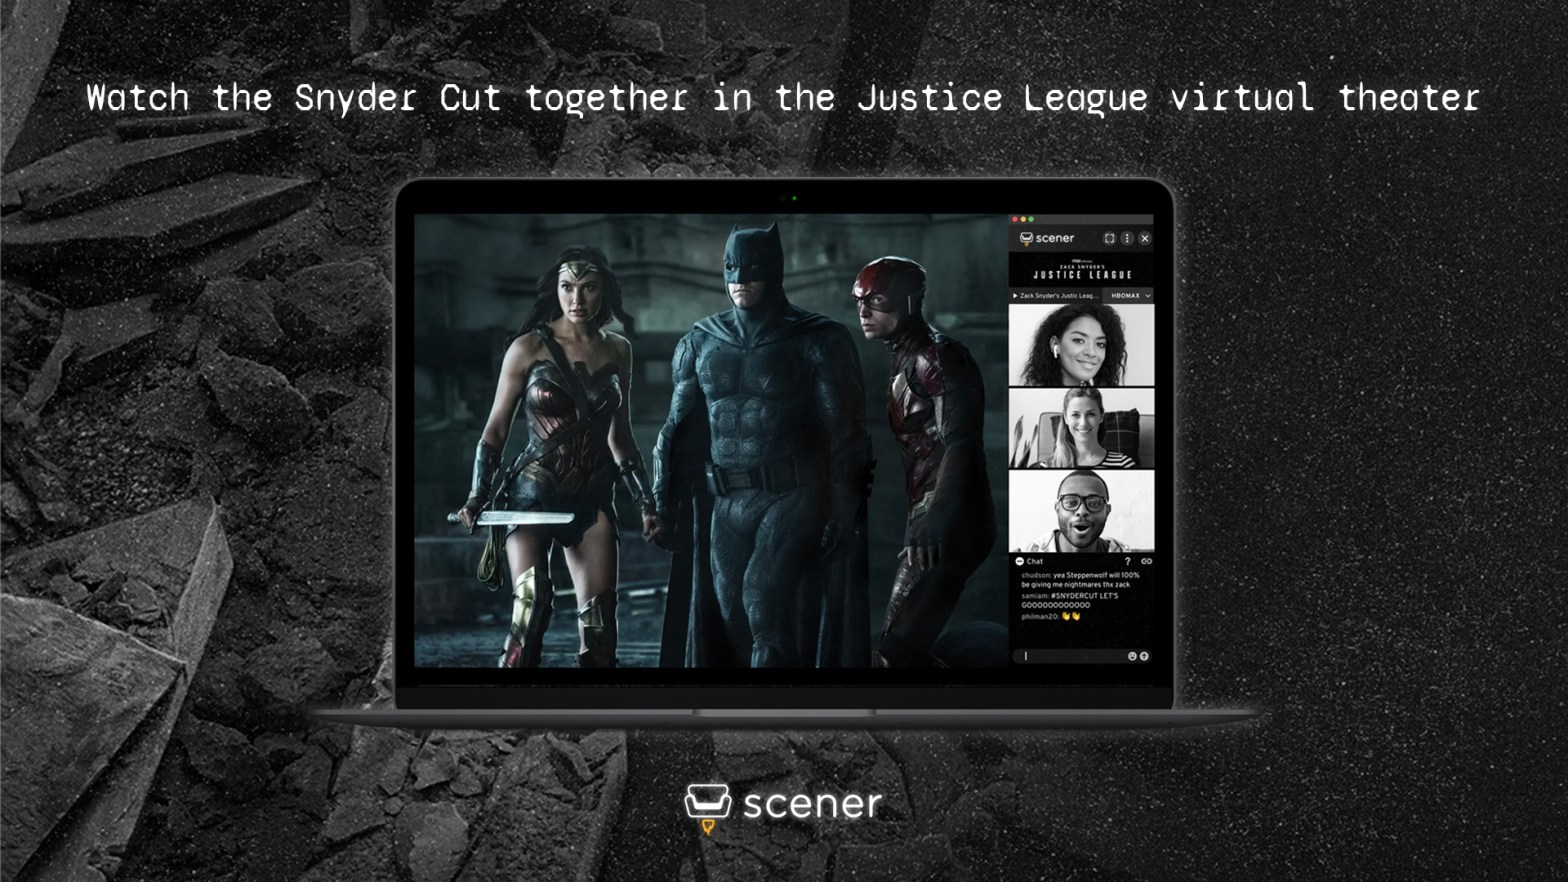 Watch Zack Snyder's Justice League in your own virtual theater